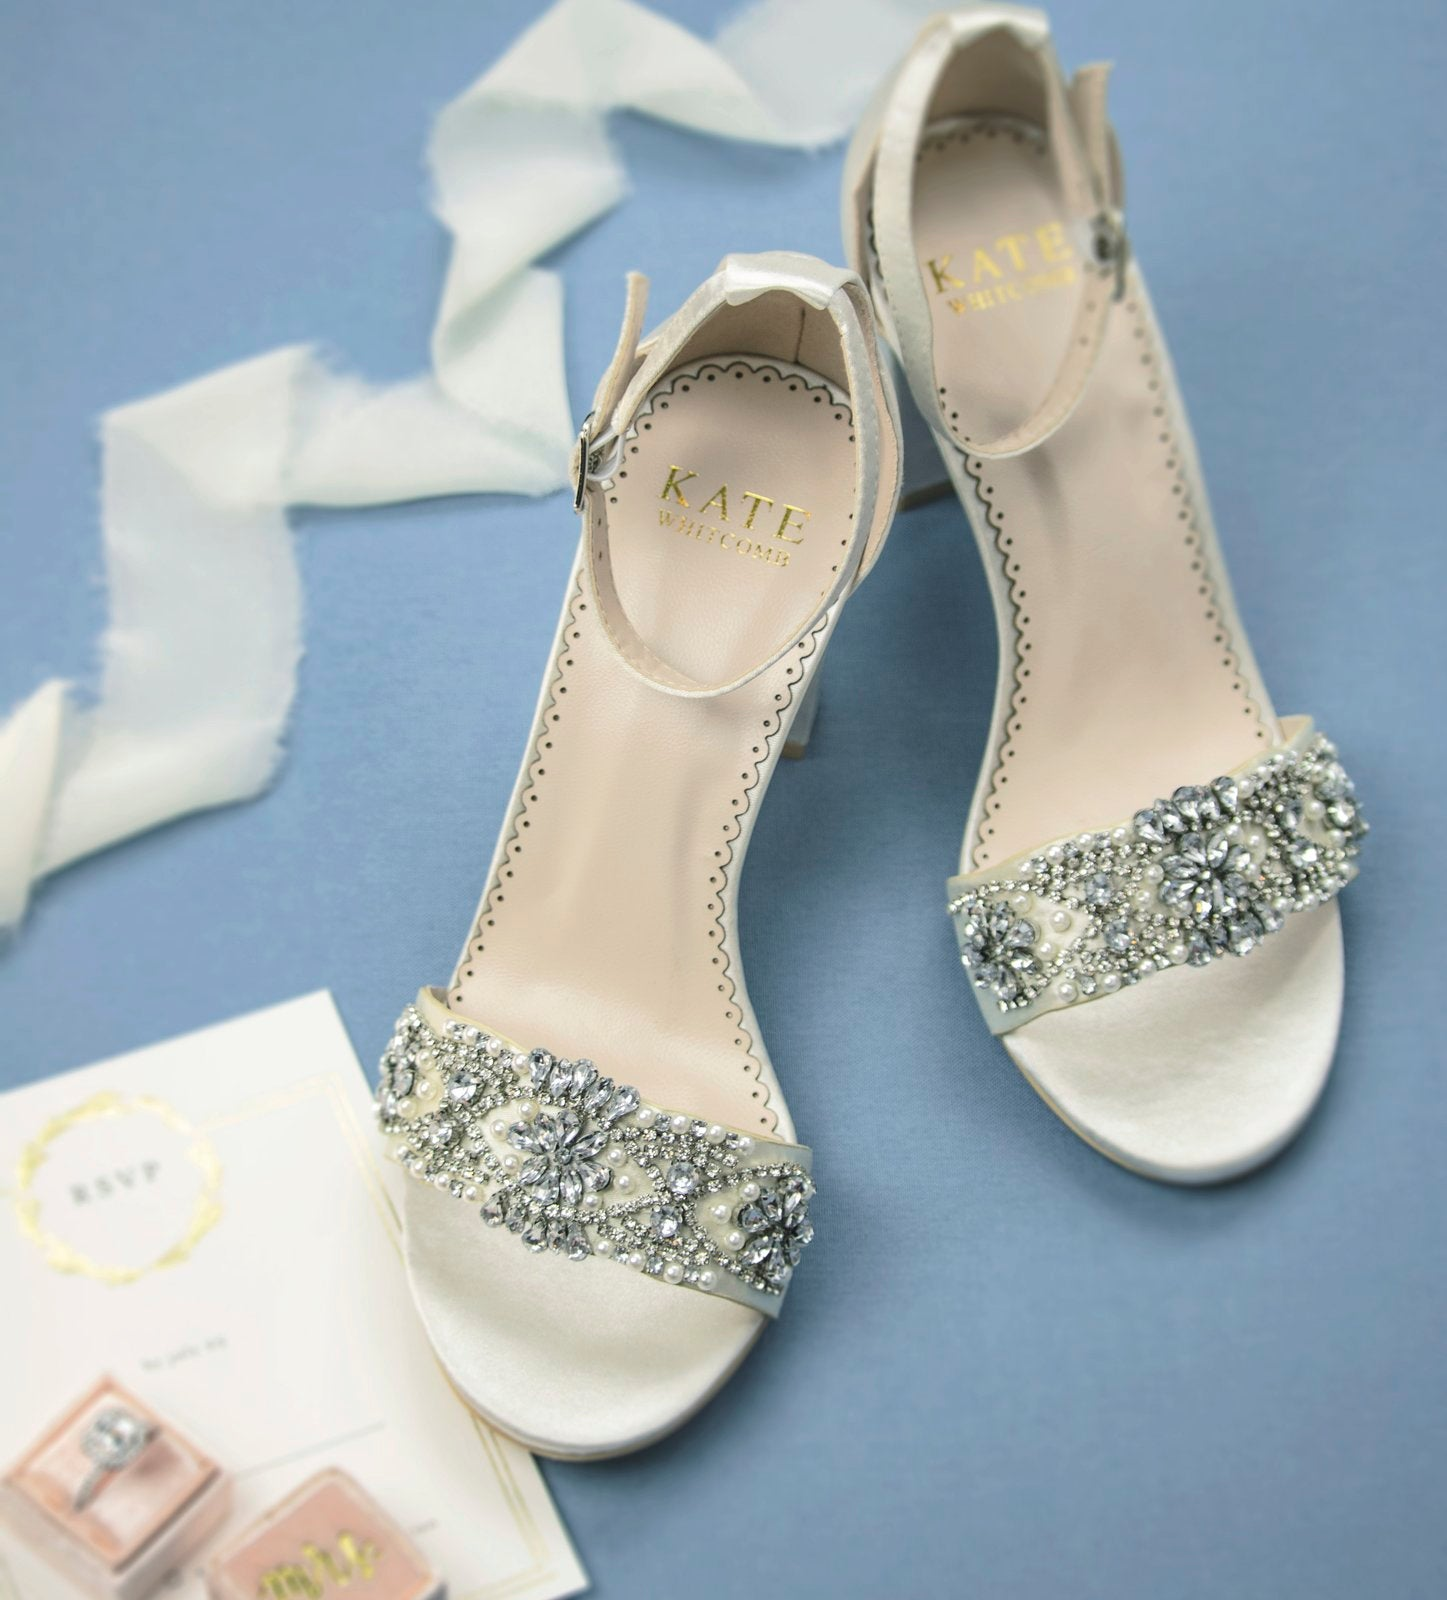 christian wedding shoes, personalized wedding shoes, personalized bible shoes, kate whitcomb